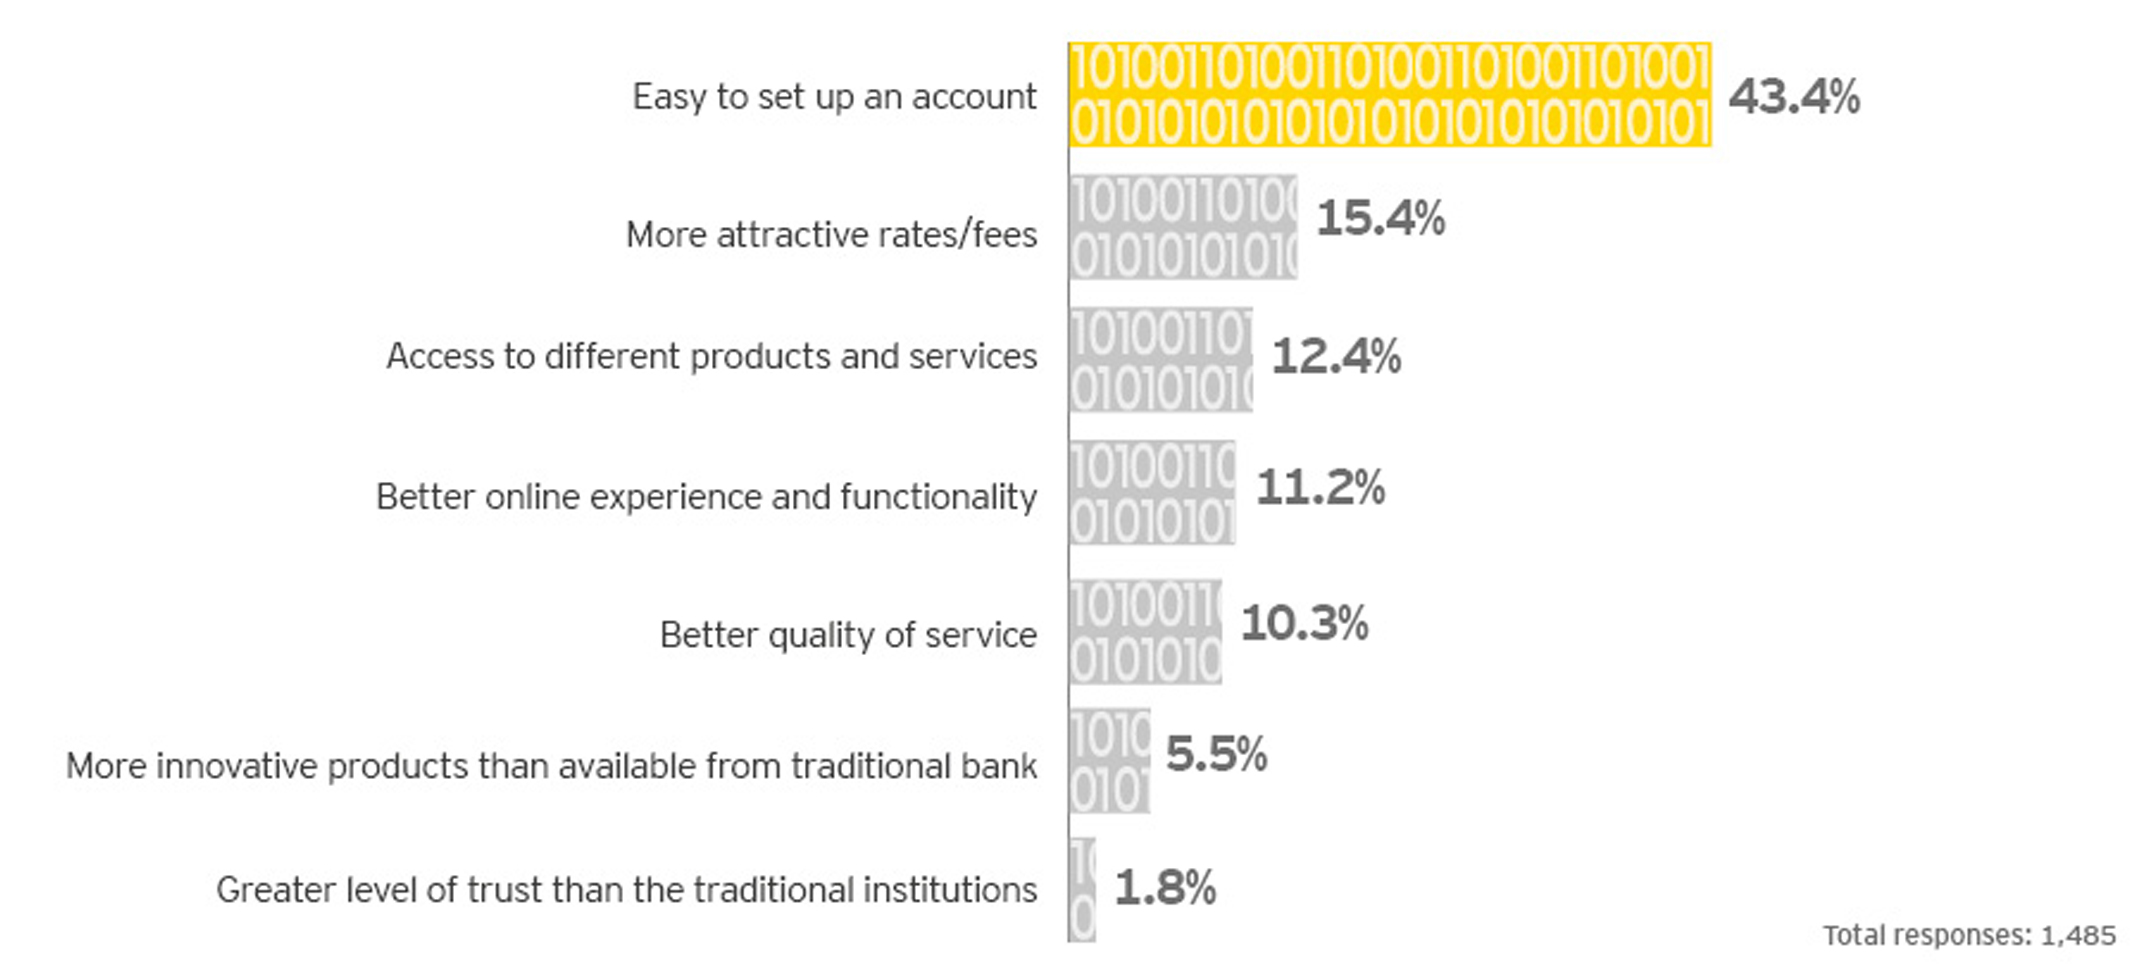 ey-top-seven-reasons-for-using-a-fintech-app